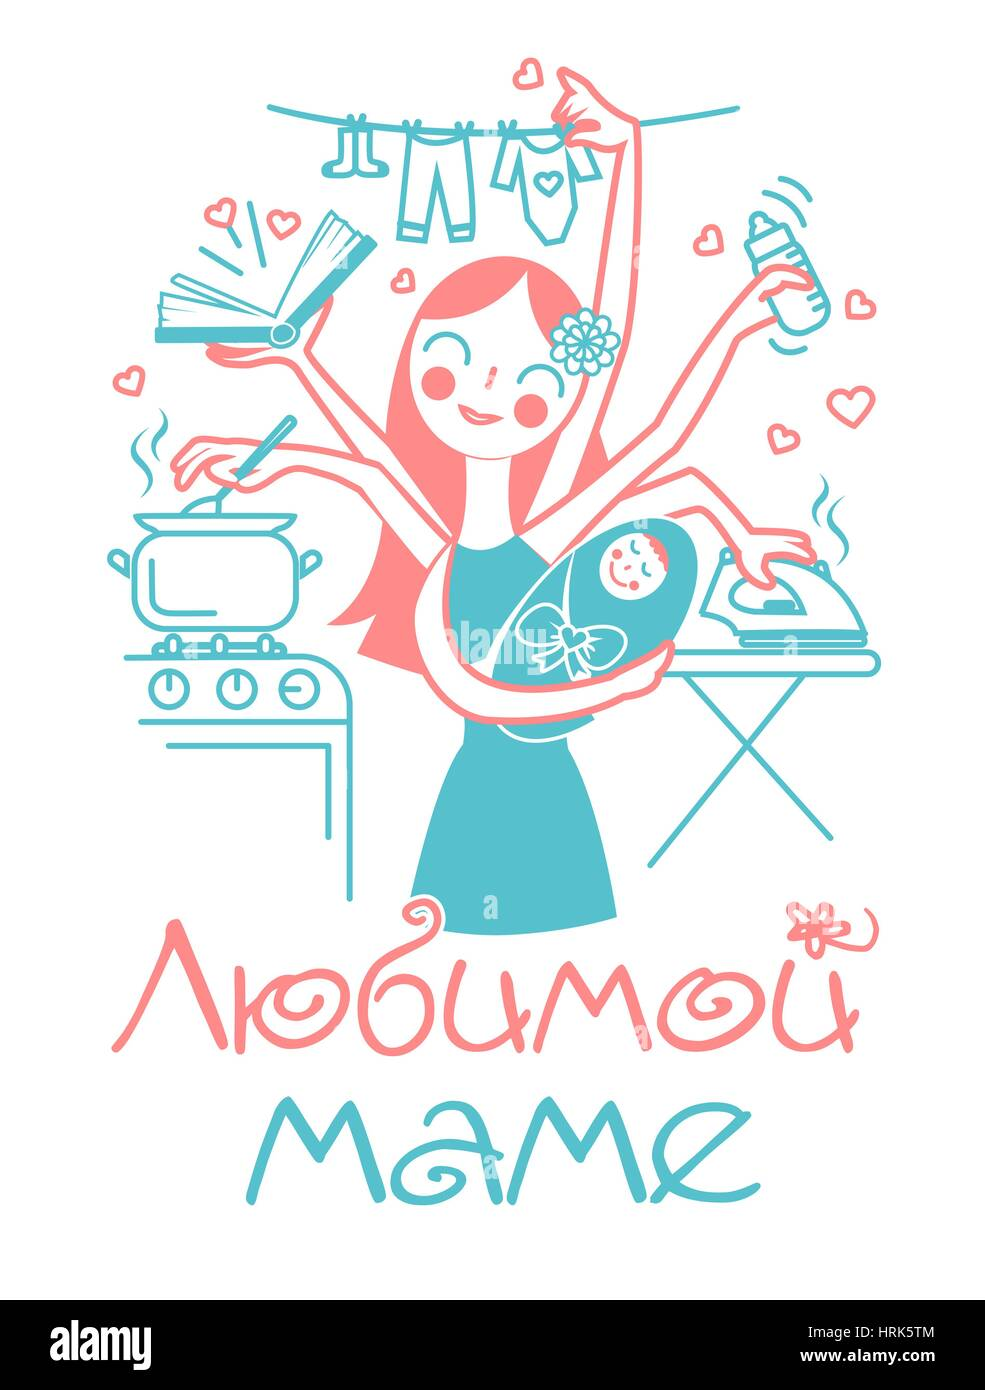 Greeting card holiday womens day 8 march mothers day stock greeting card holiday womens day 8 march mothers day translation from russian beloved mother m4hsunfo